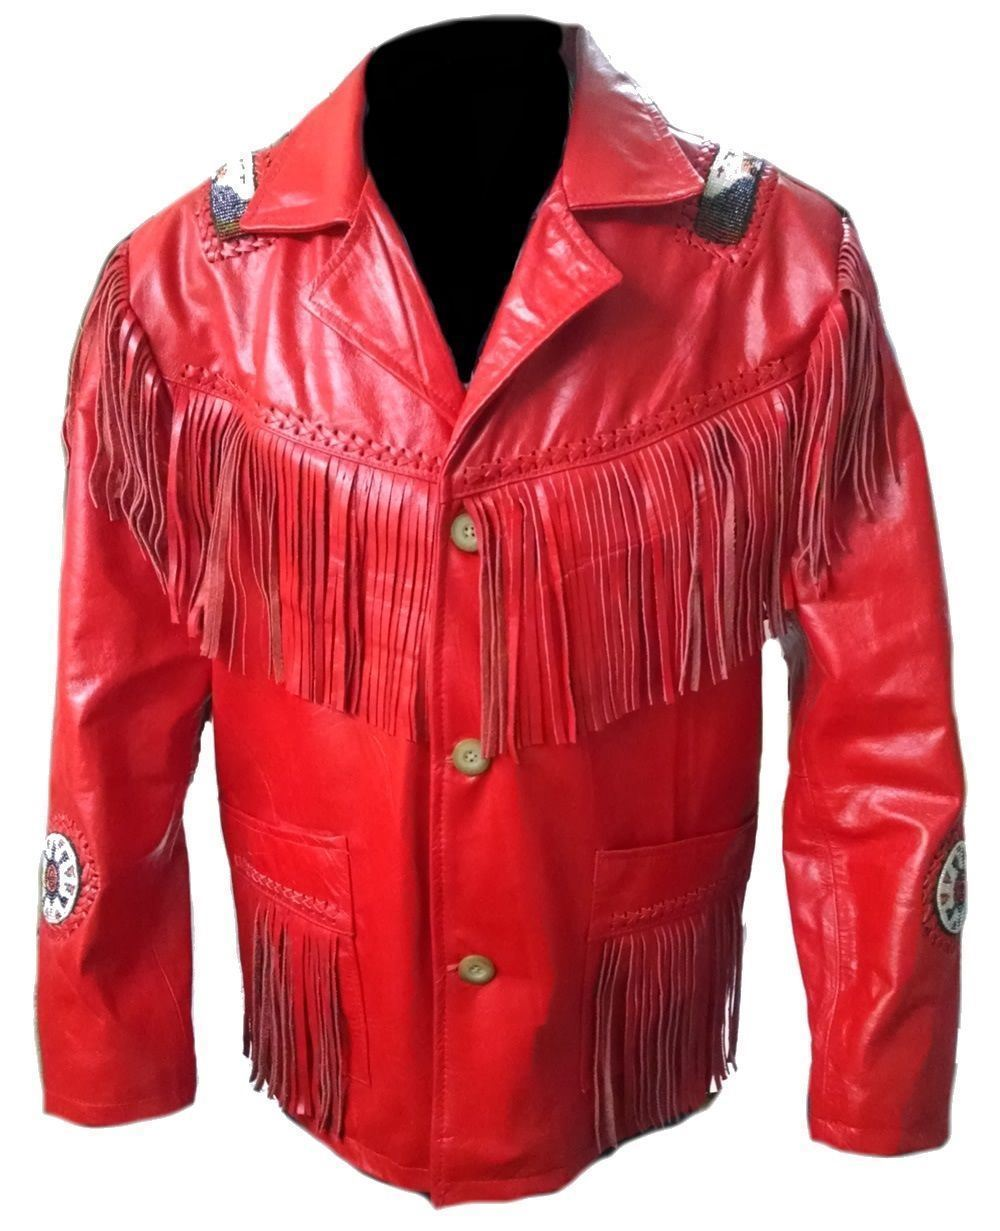 Ather skin men red handmade genuine leather jacket with leather fringes white wheel badges front